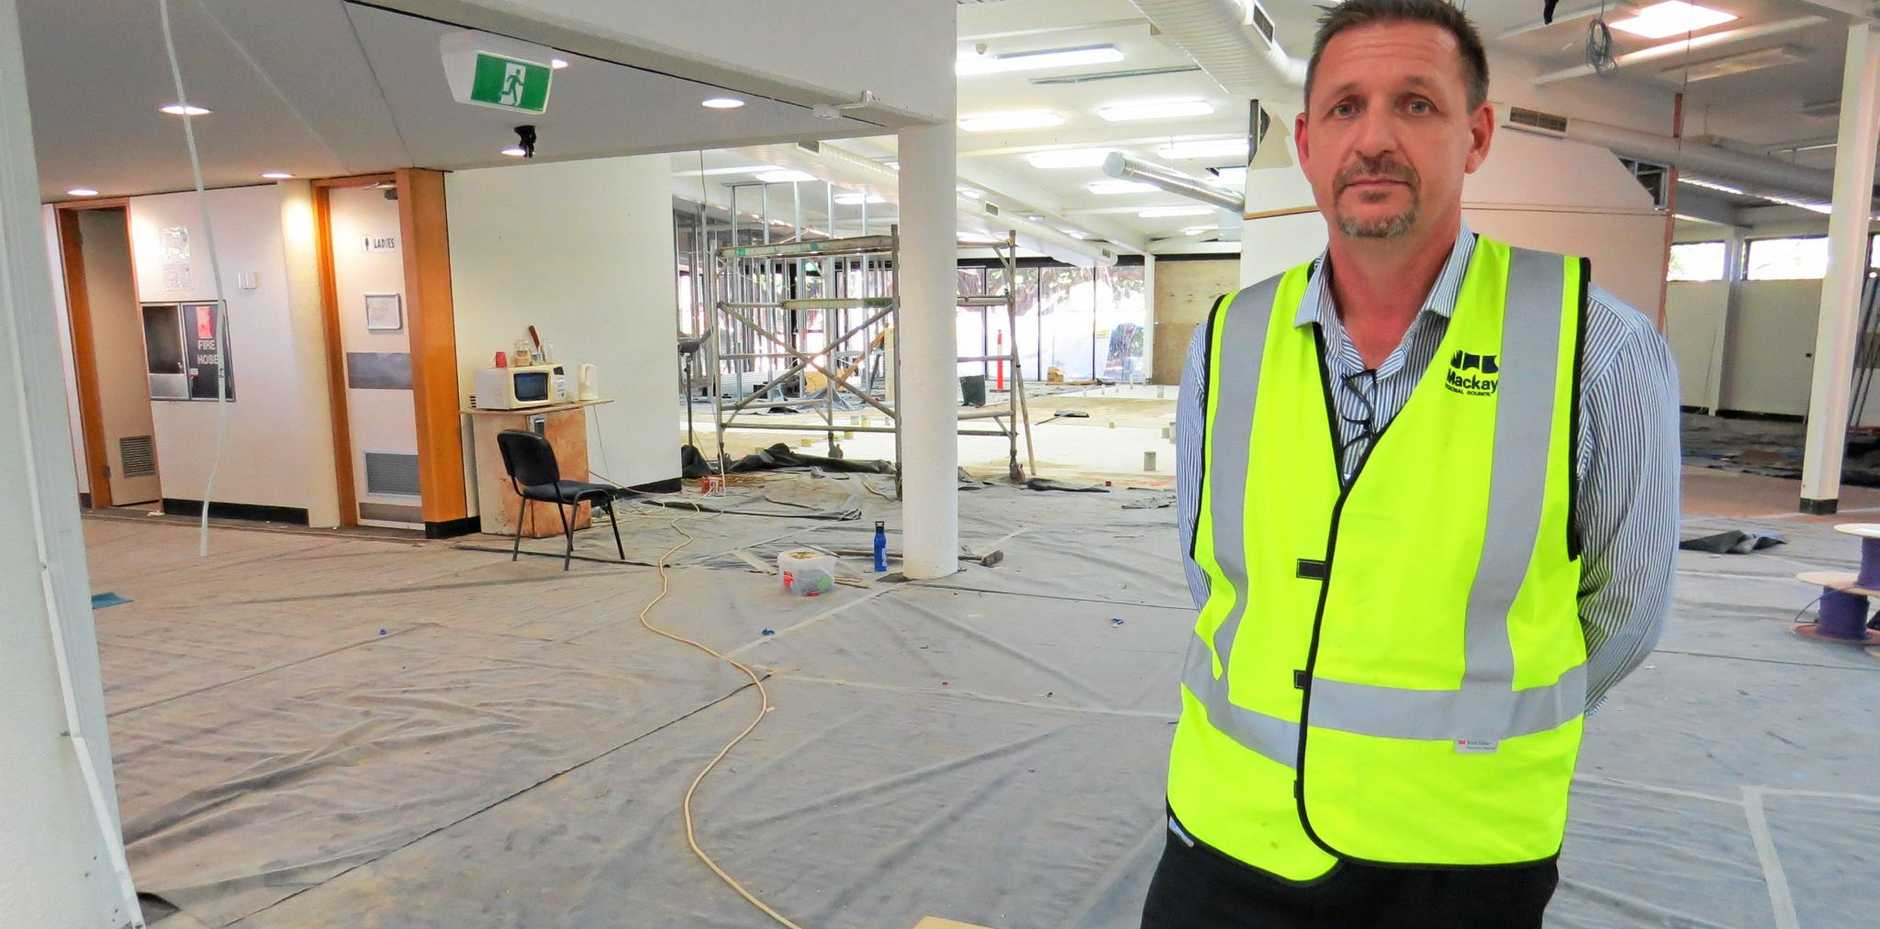 Manager of the refurbishment of the old Mackay library, Erik Oosterbroek.